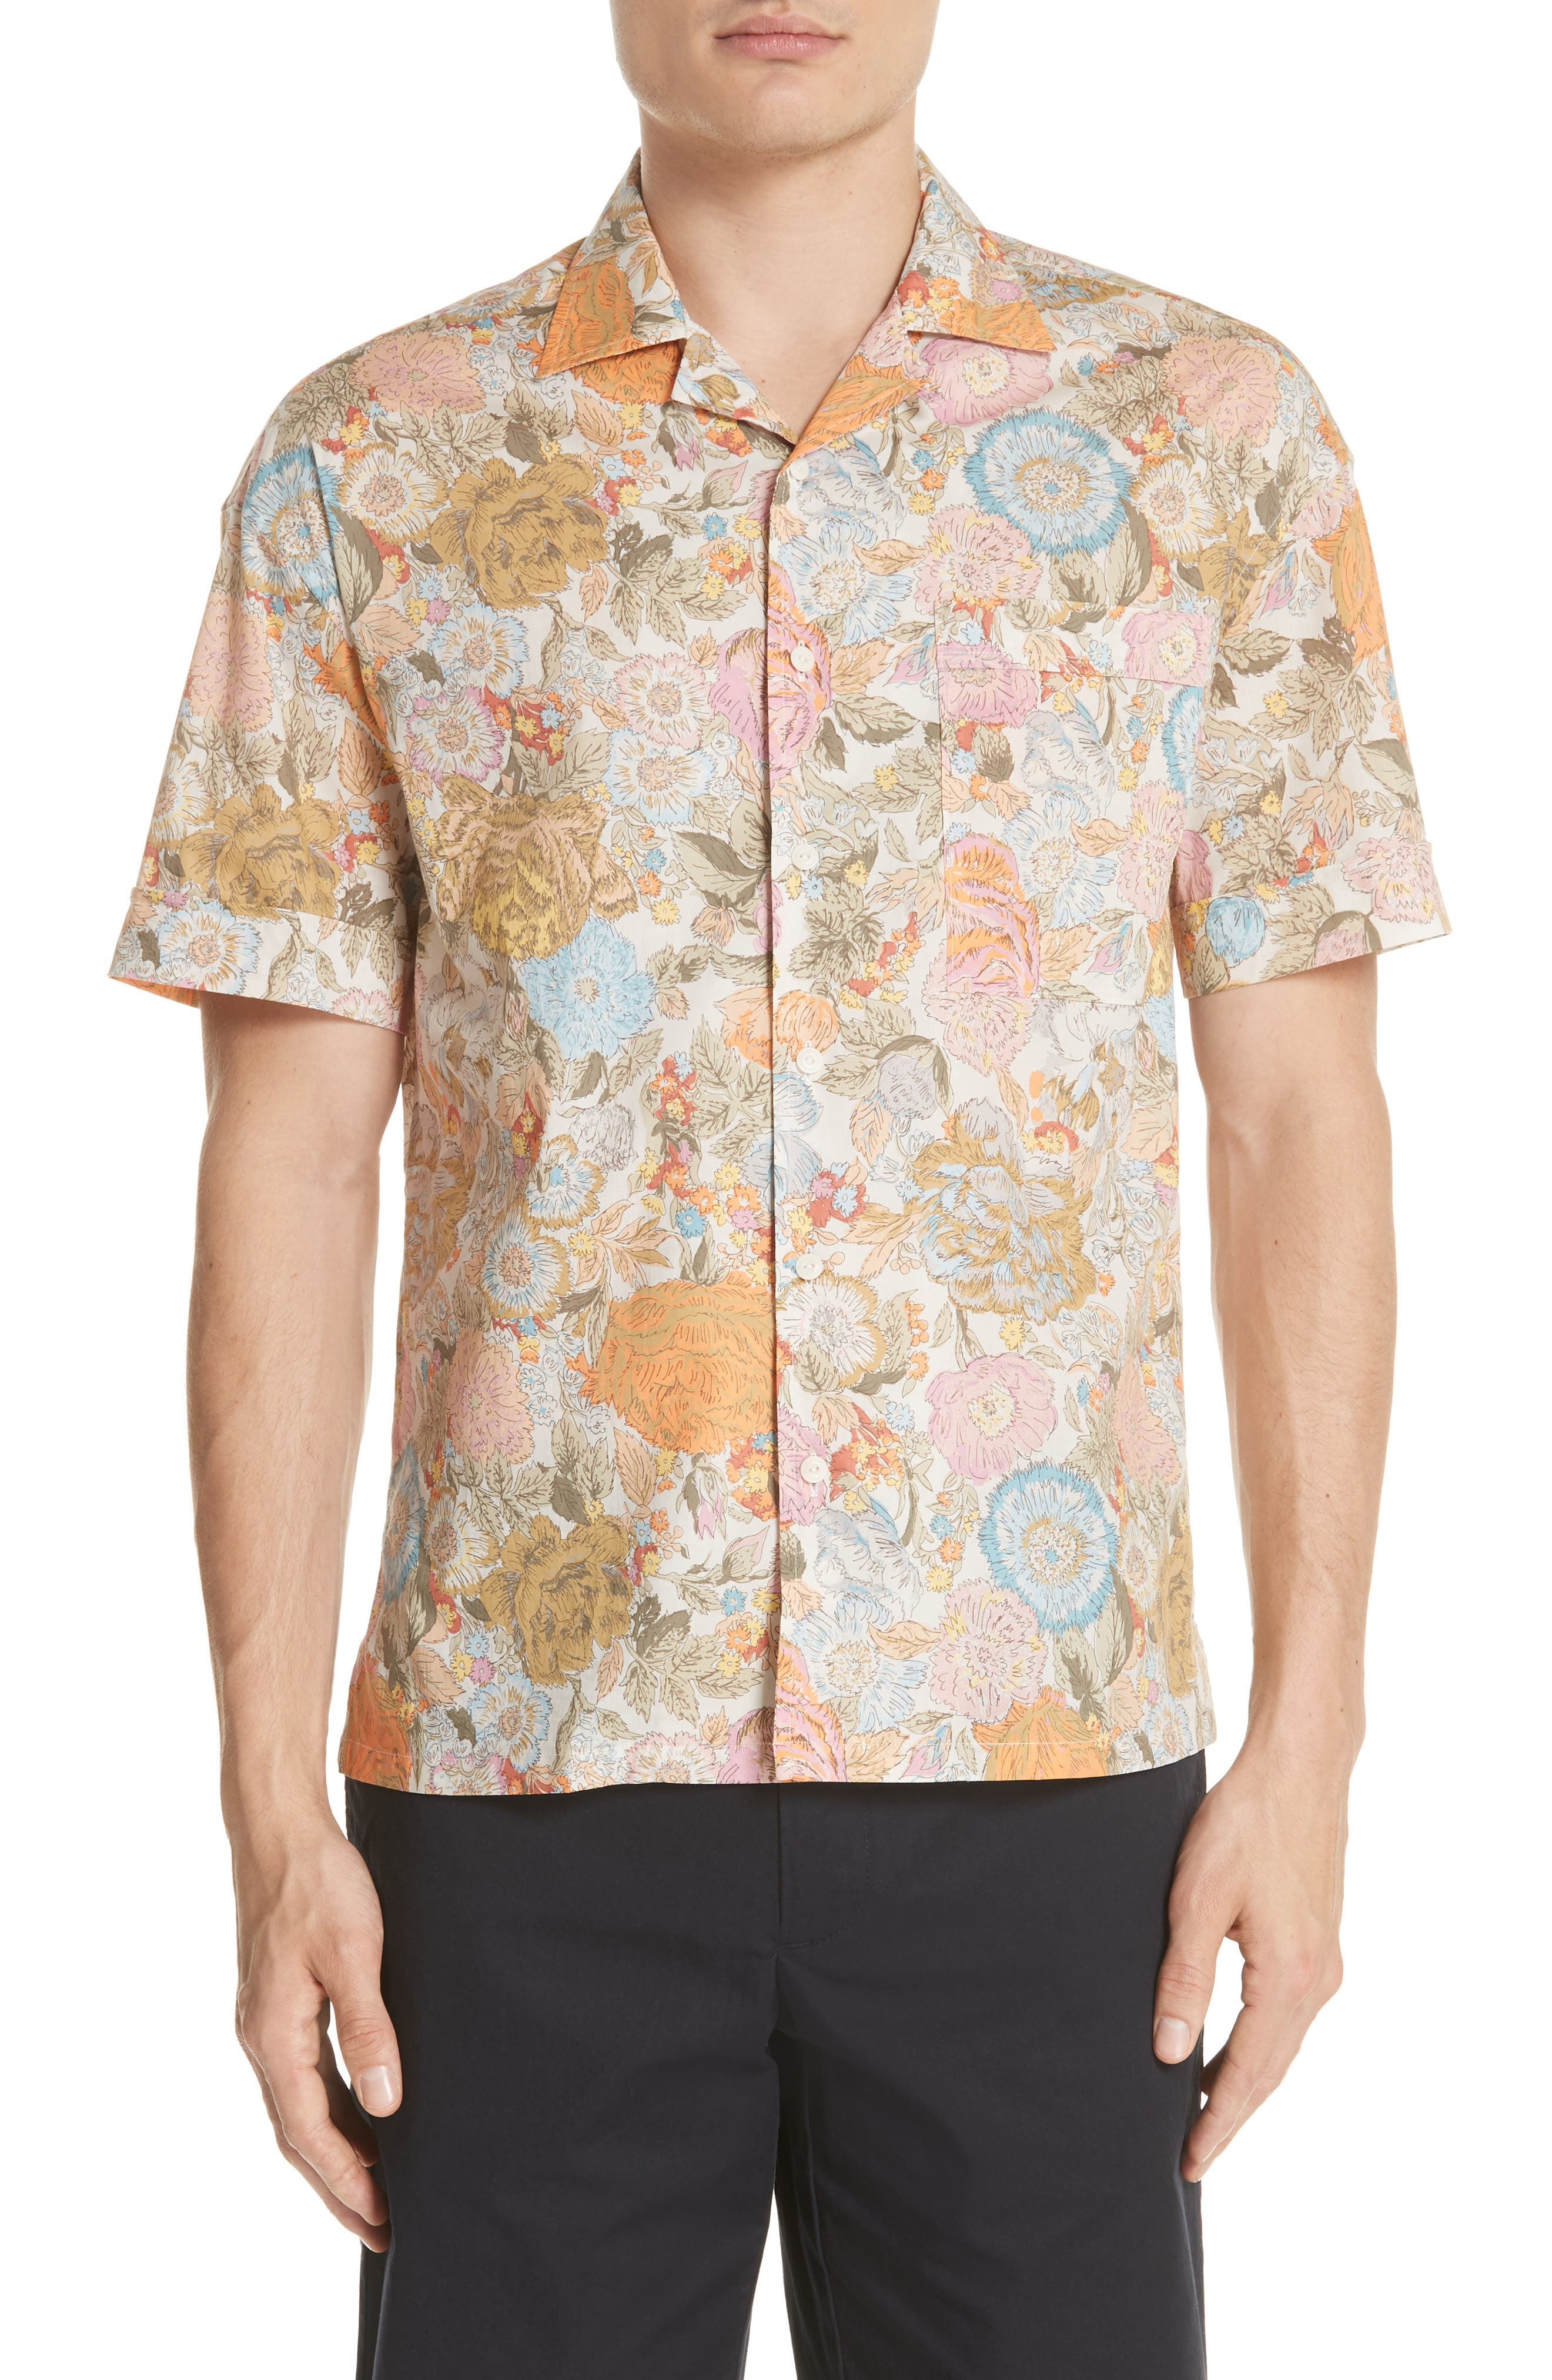 Harley Floral Print Shirt,                         Main,                         color, Bright Orange